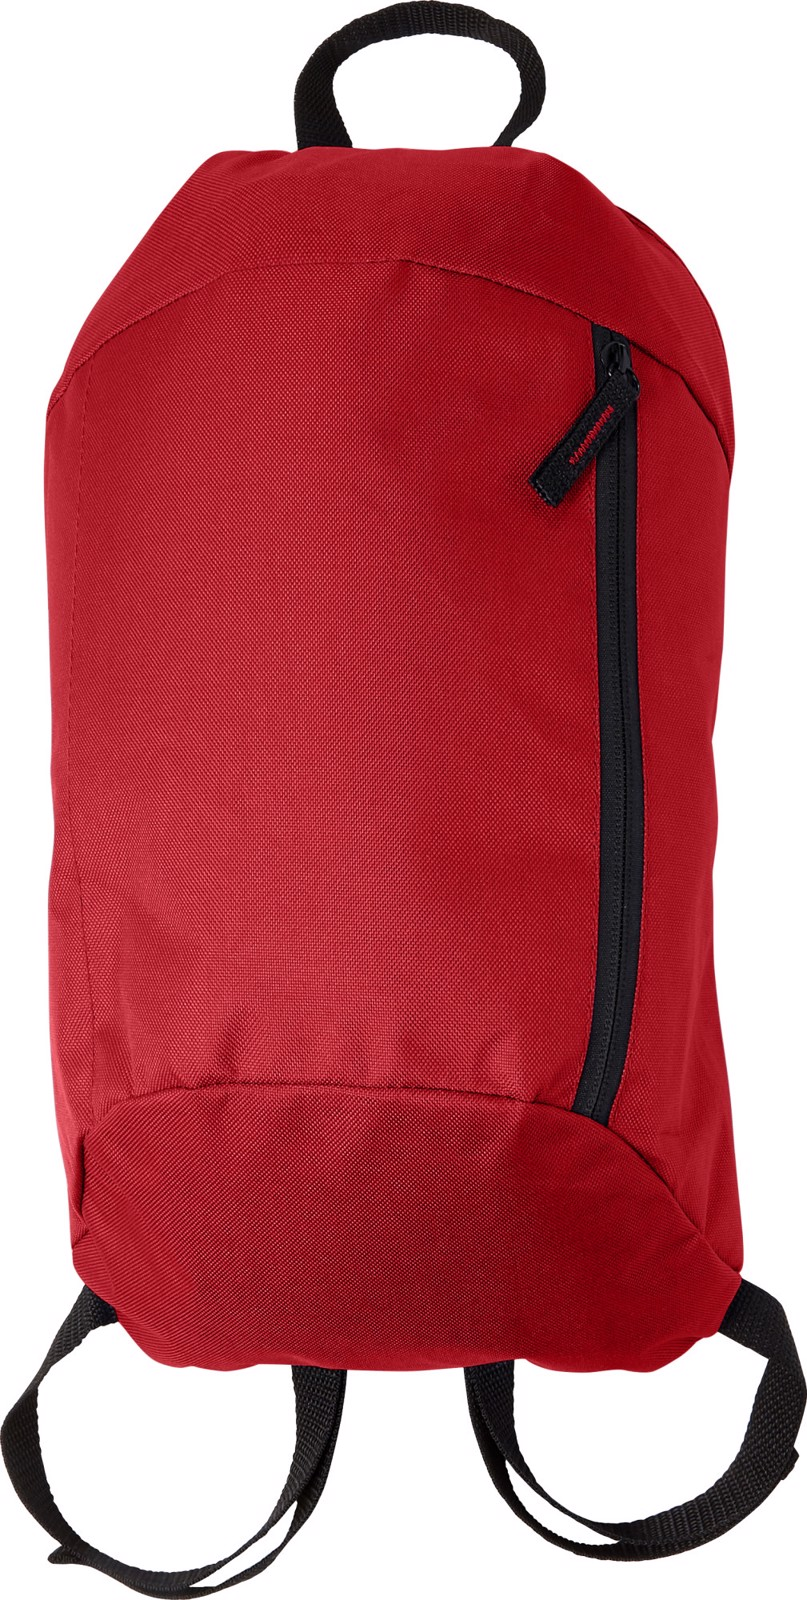 Polyester (210D) backpack - Red